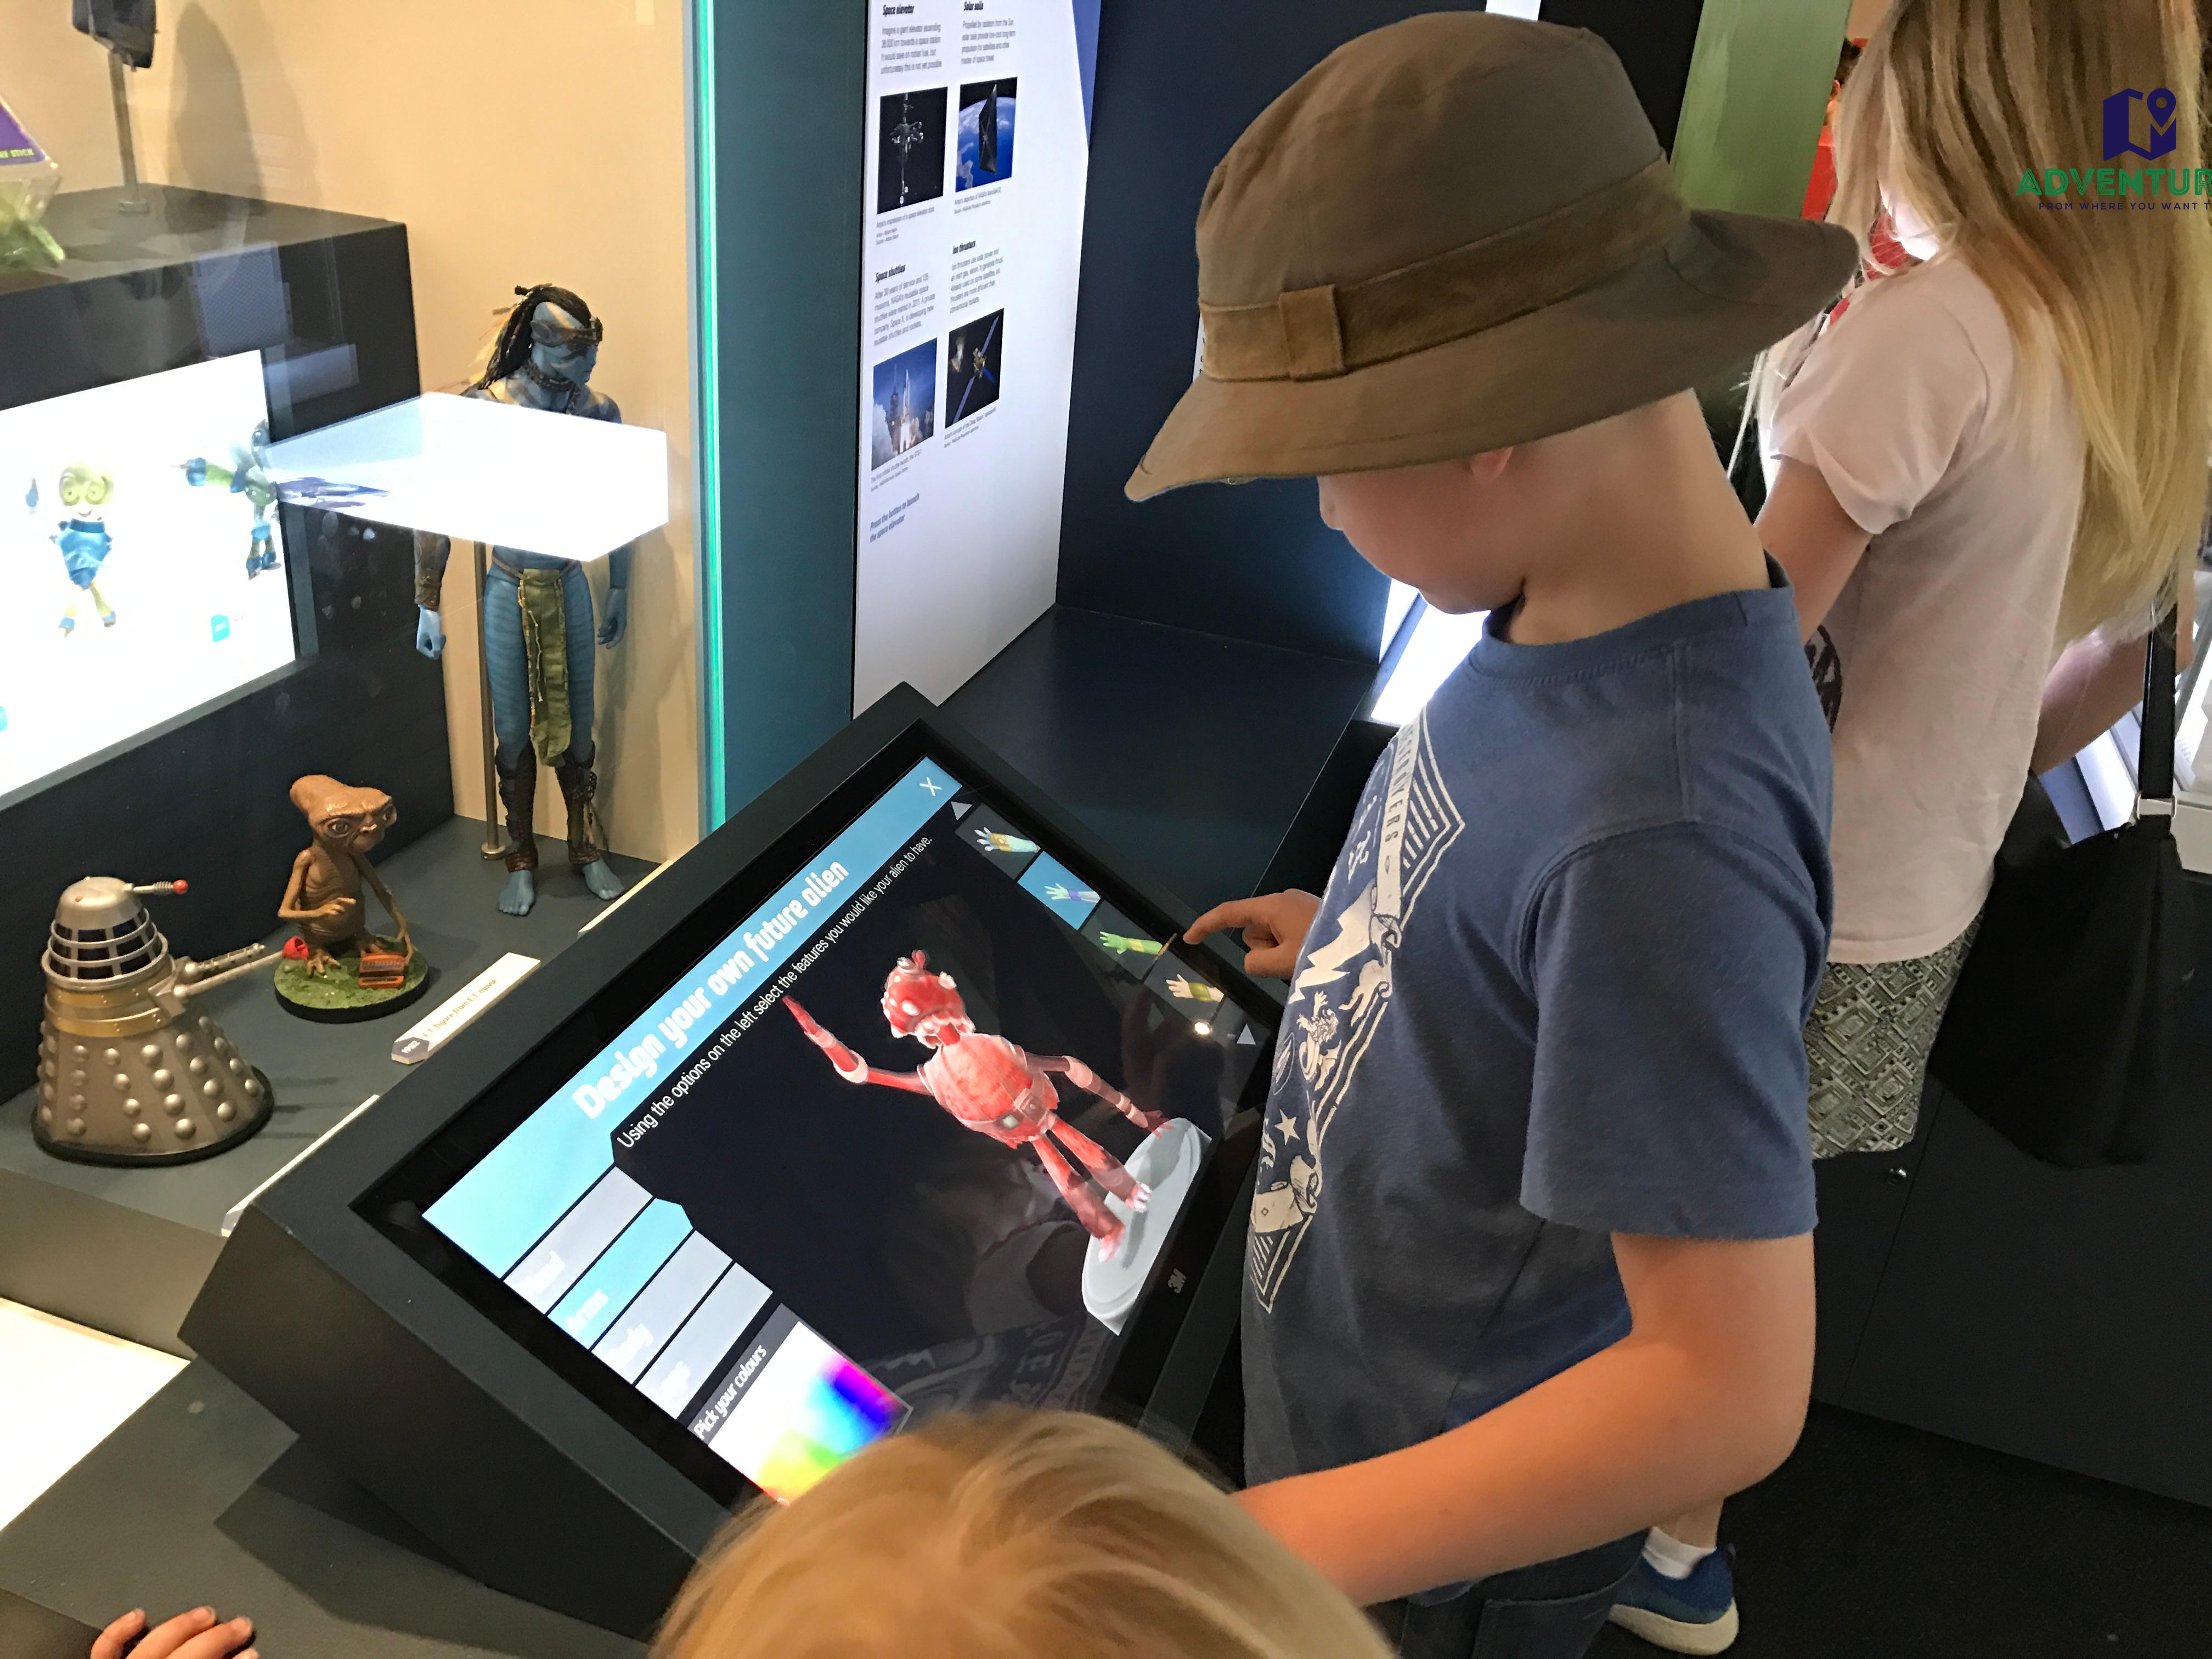 Science Works - Main exhibit